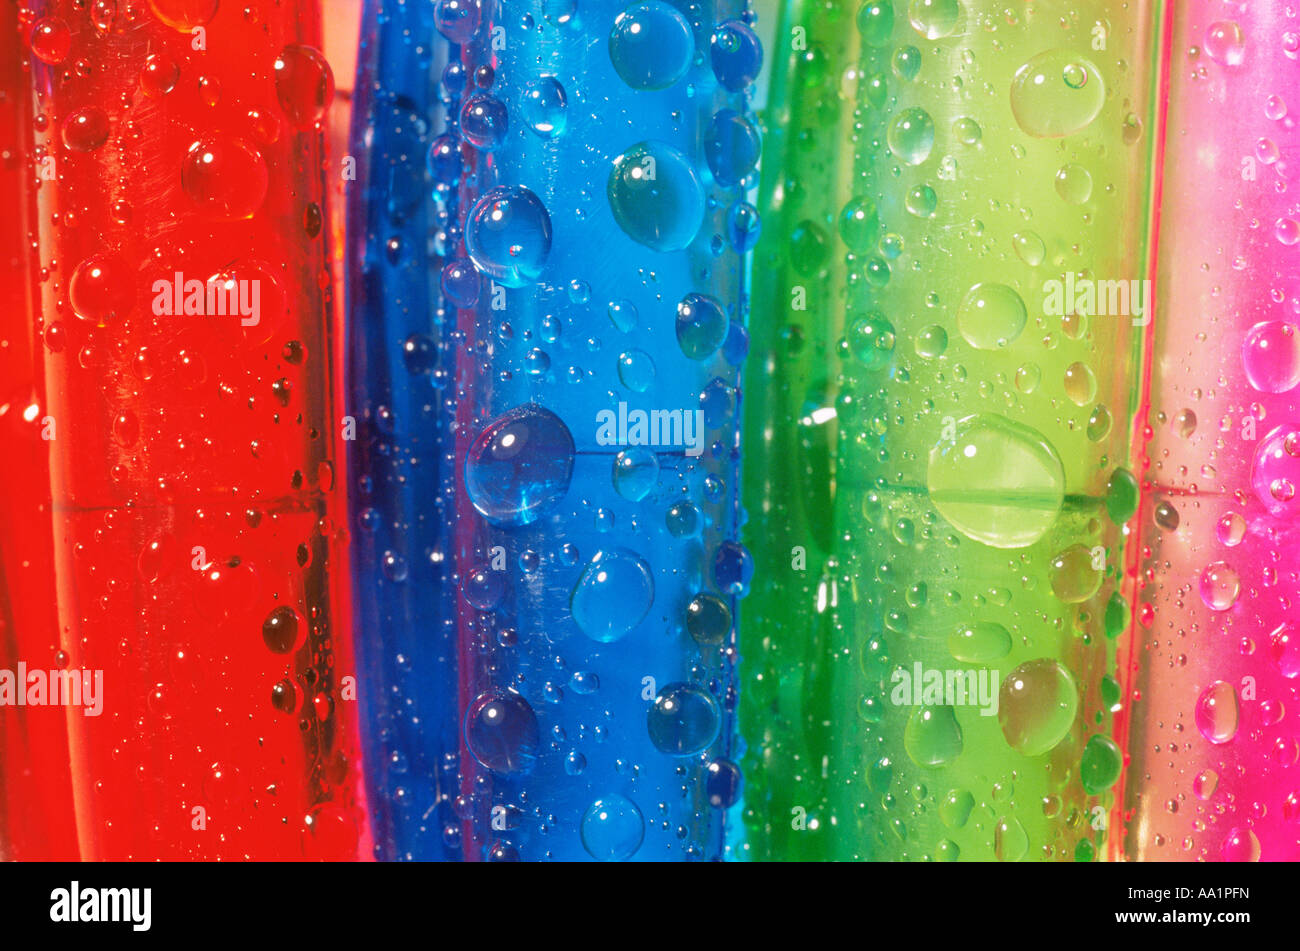 Water droplets on plastic - Stock Image